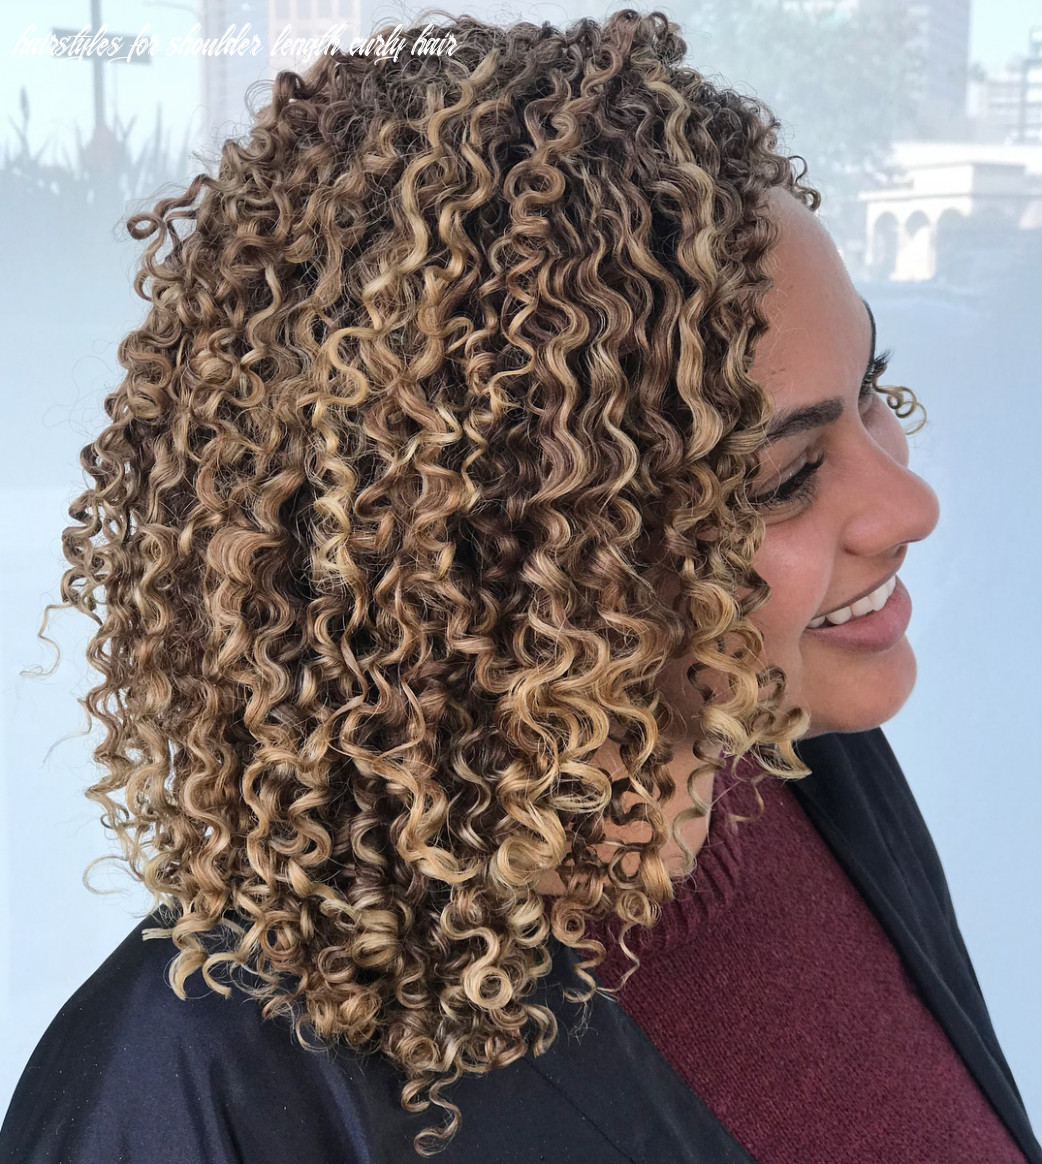 12 Natural Curly Hairstyles & Curly Hair Ideas to Try in 12 ...